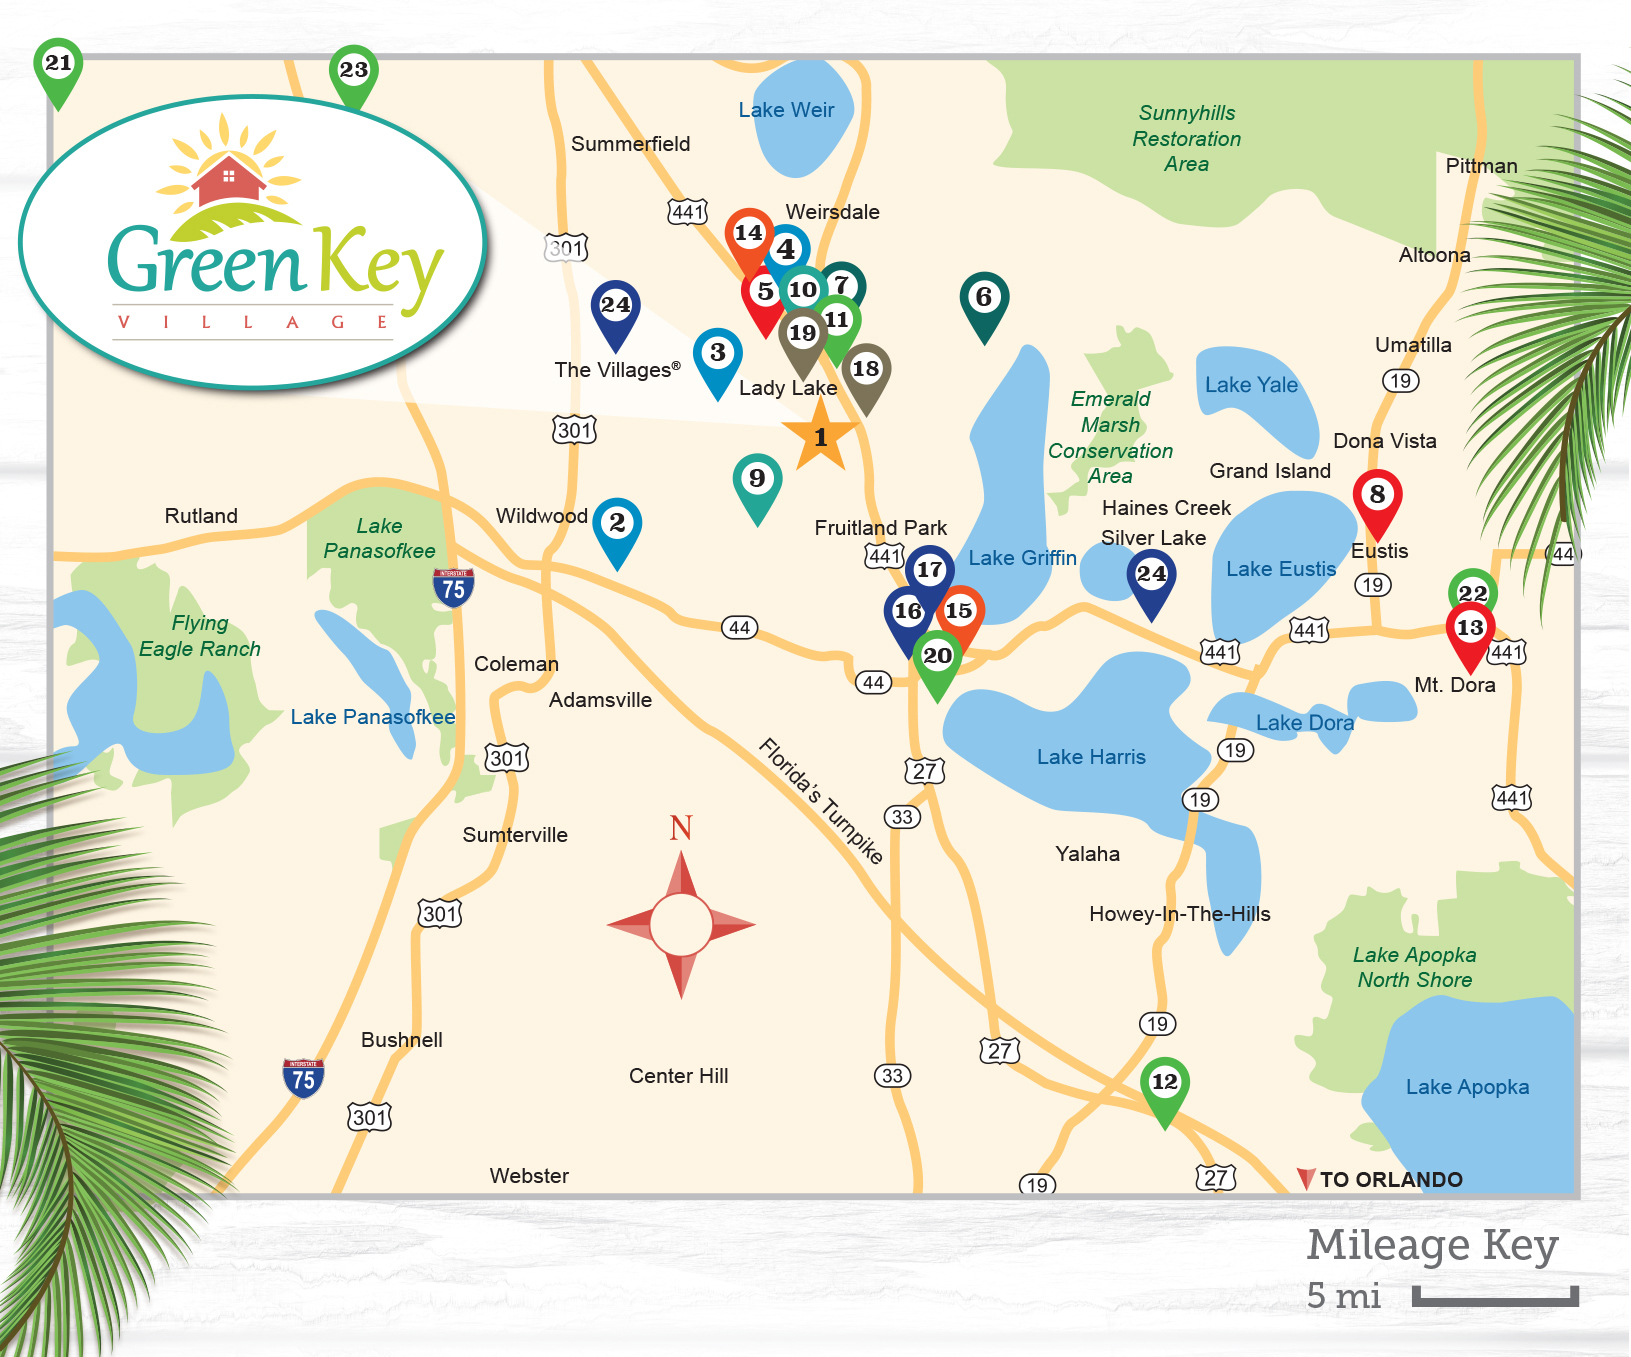 Central Florida's Must-See Destinations – Green Key Village on